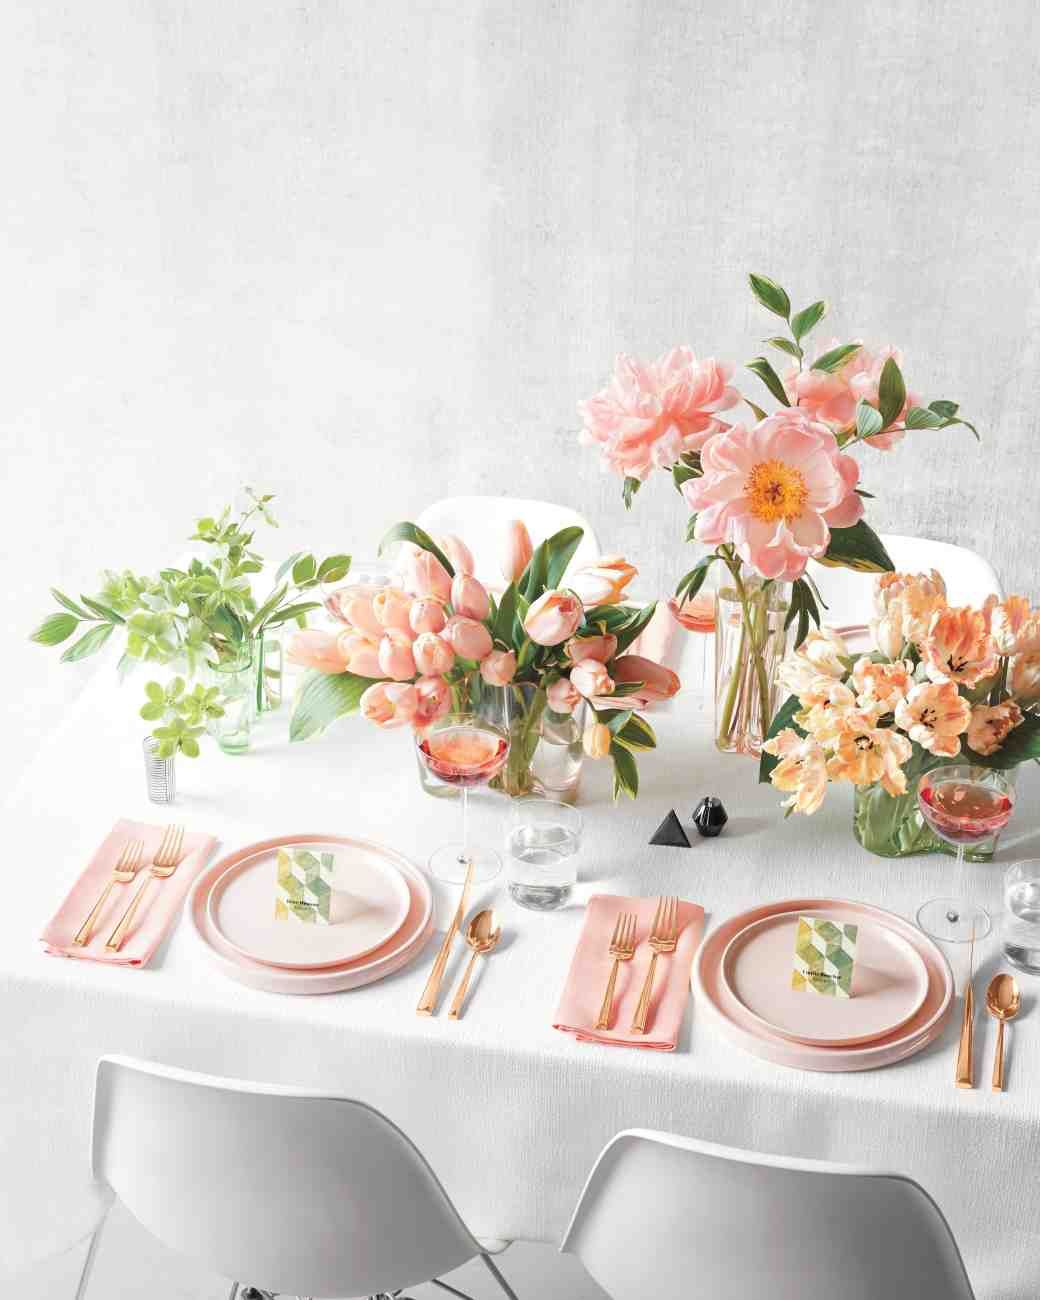 Easter at Home: Our Table & Menu Plans - Wit & Delight | + PARTY + ...